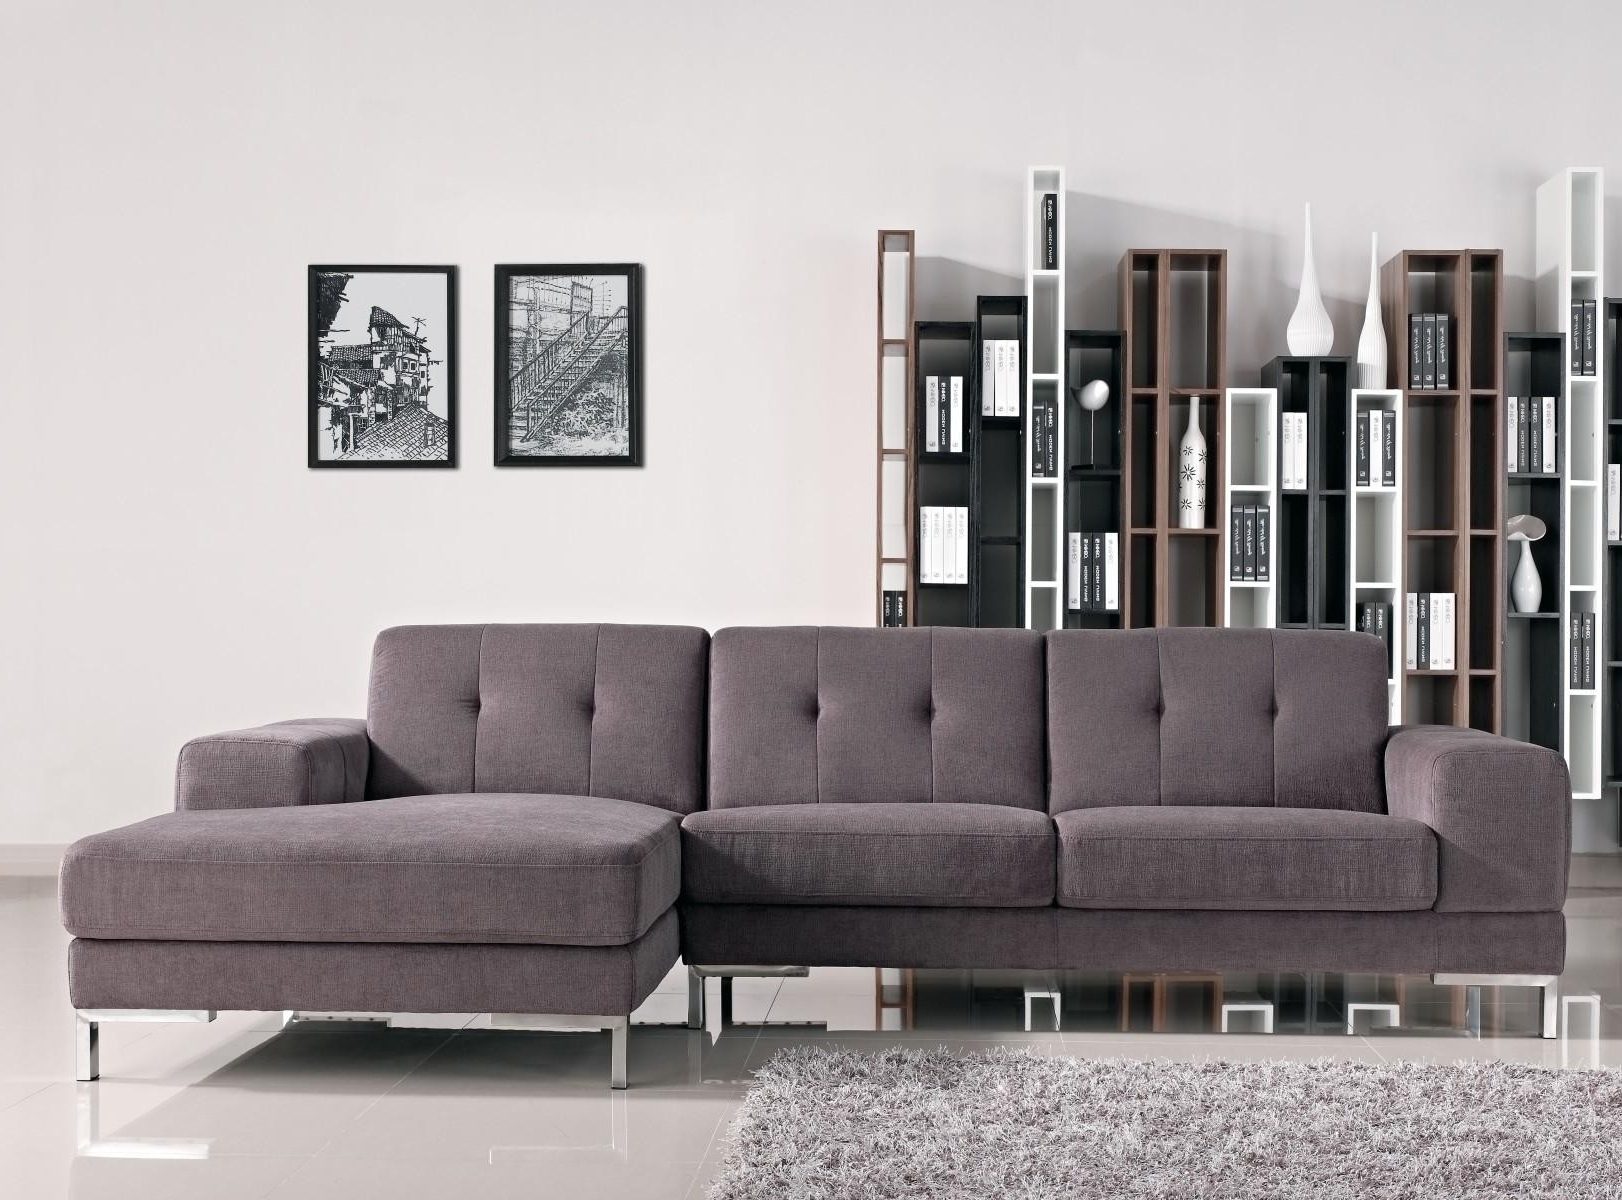 Trendy Furniture : Couch Tuner Reviews Futon Furniture In Hawaii Futon Intended For Hawaii Sectional Sofas (View 10 of 15)